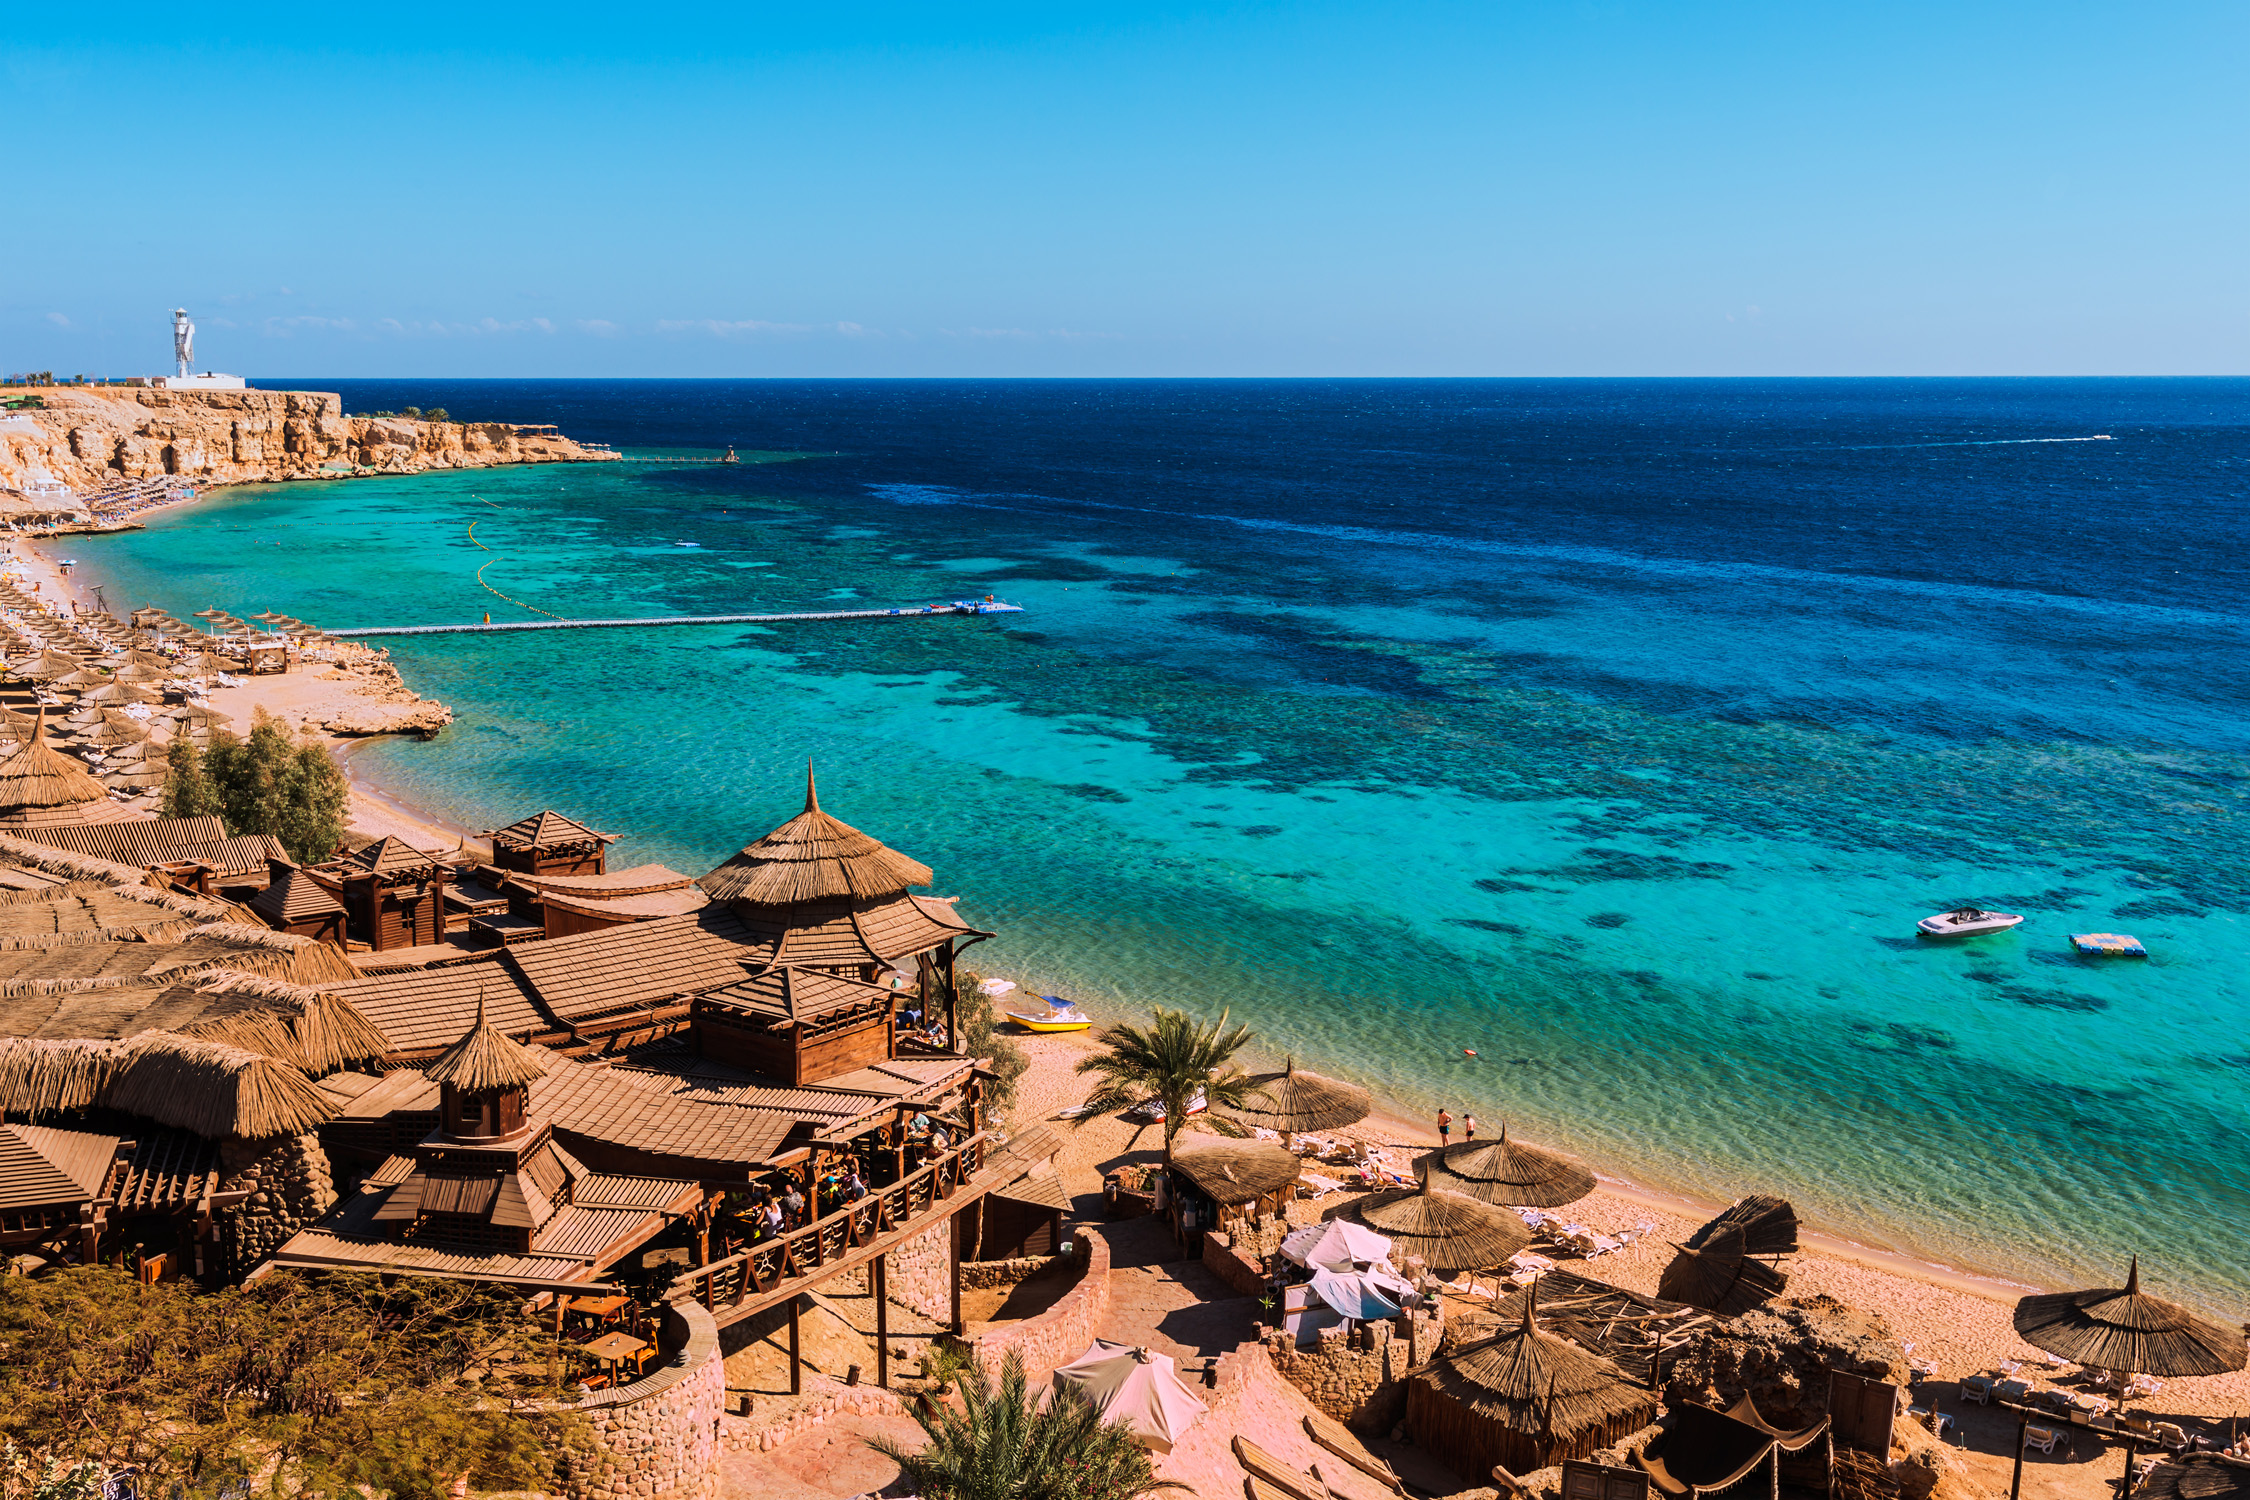 Luxus In Agypten 7 Tage Im Top 5 Award Hotel Mit All Inclusive